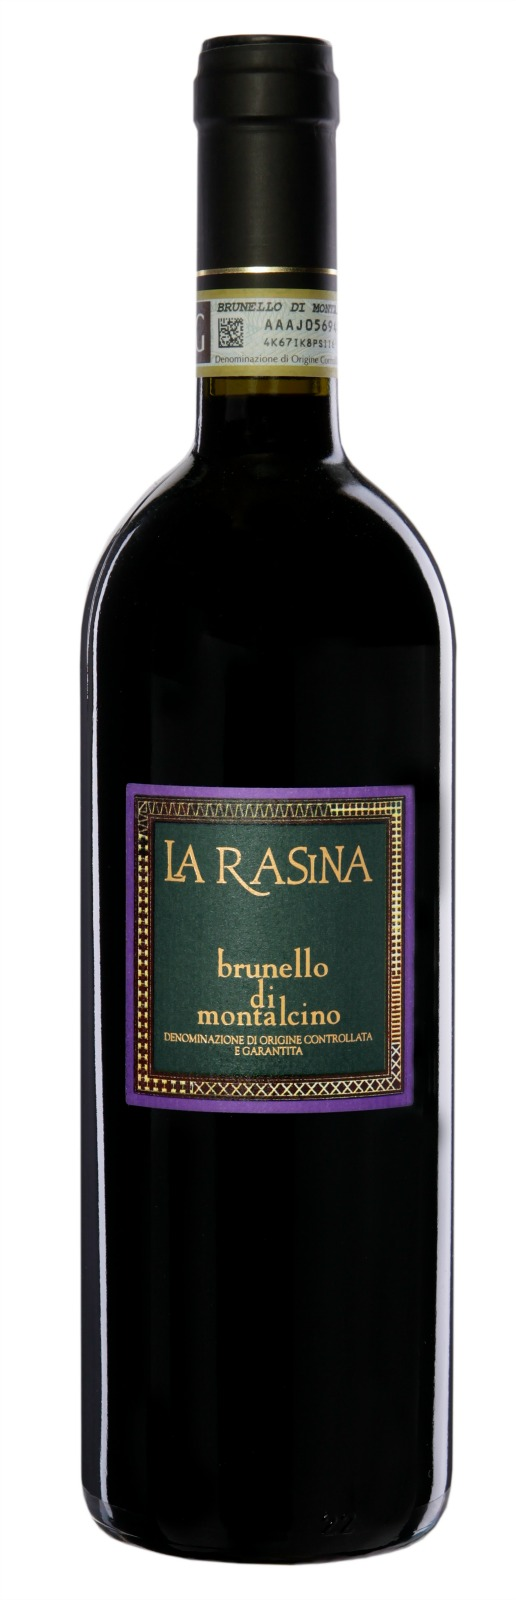 La Rasina Brunello di Montalcino 2013,  (JS96) from The BPW - Merchants of rare and fine wines.